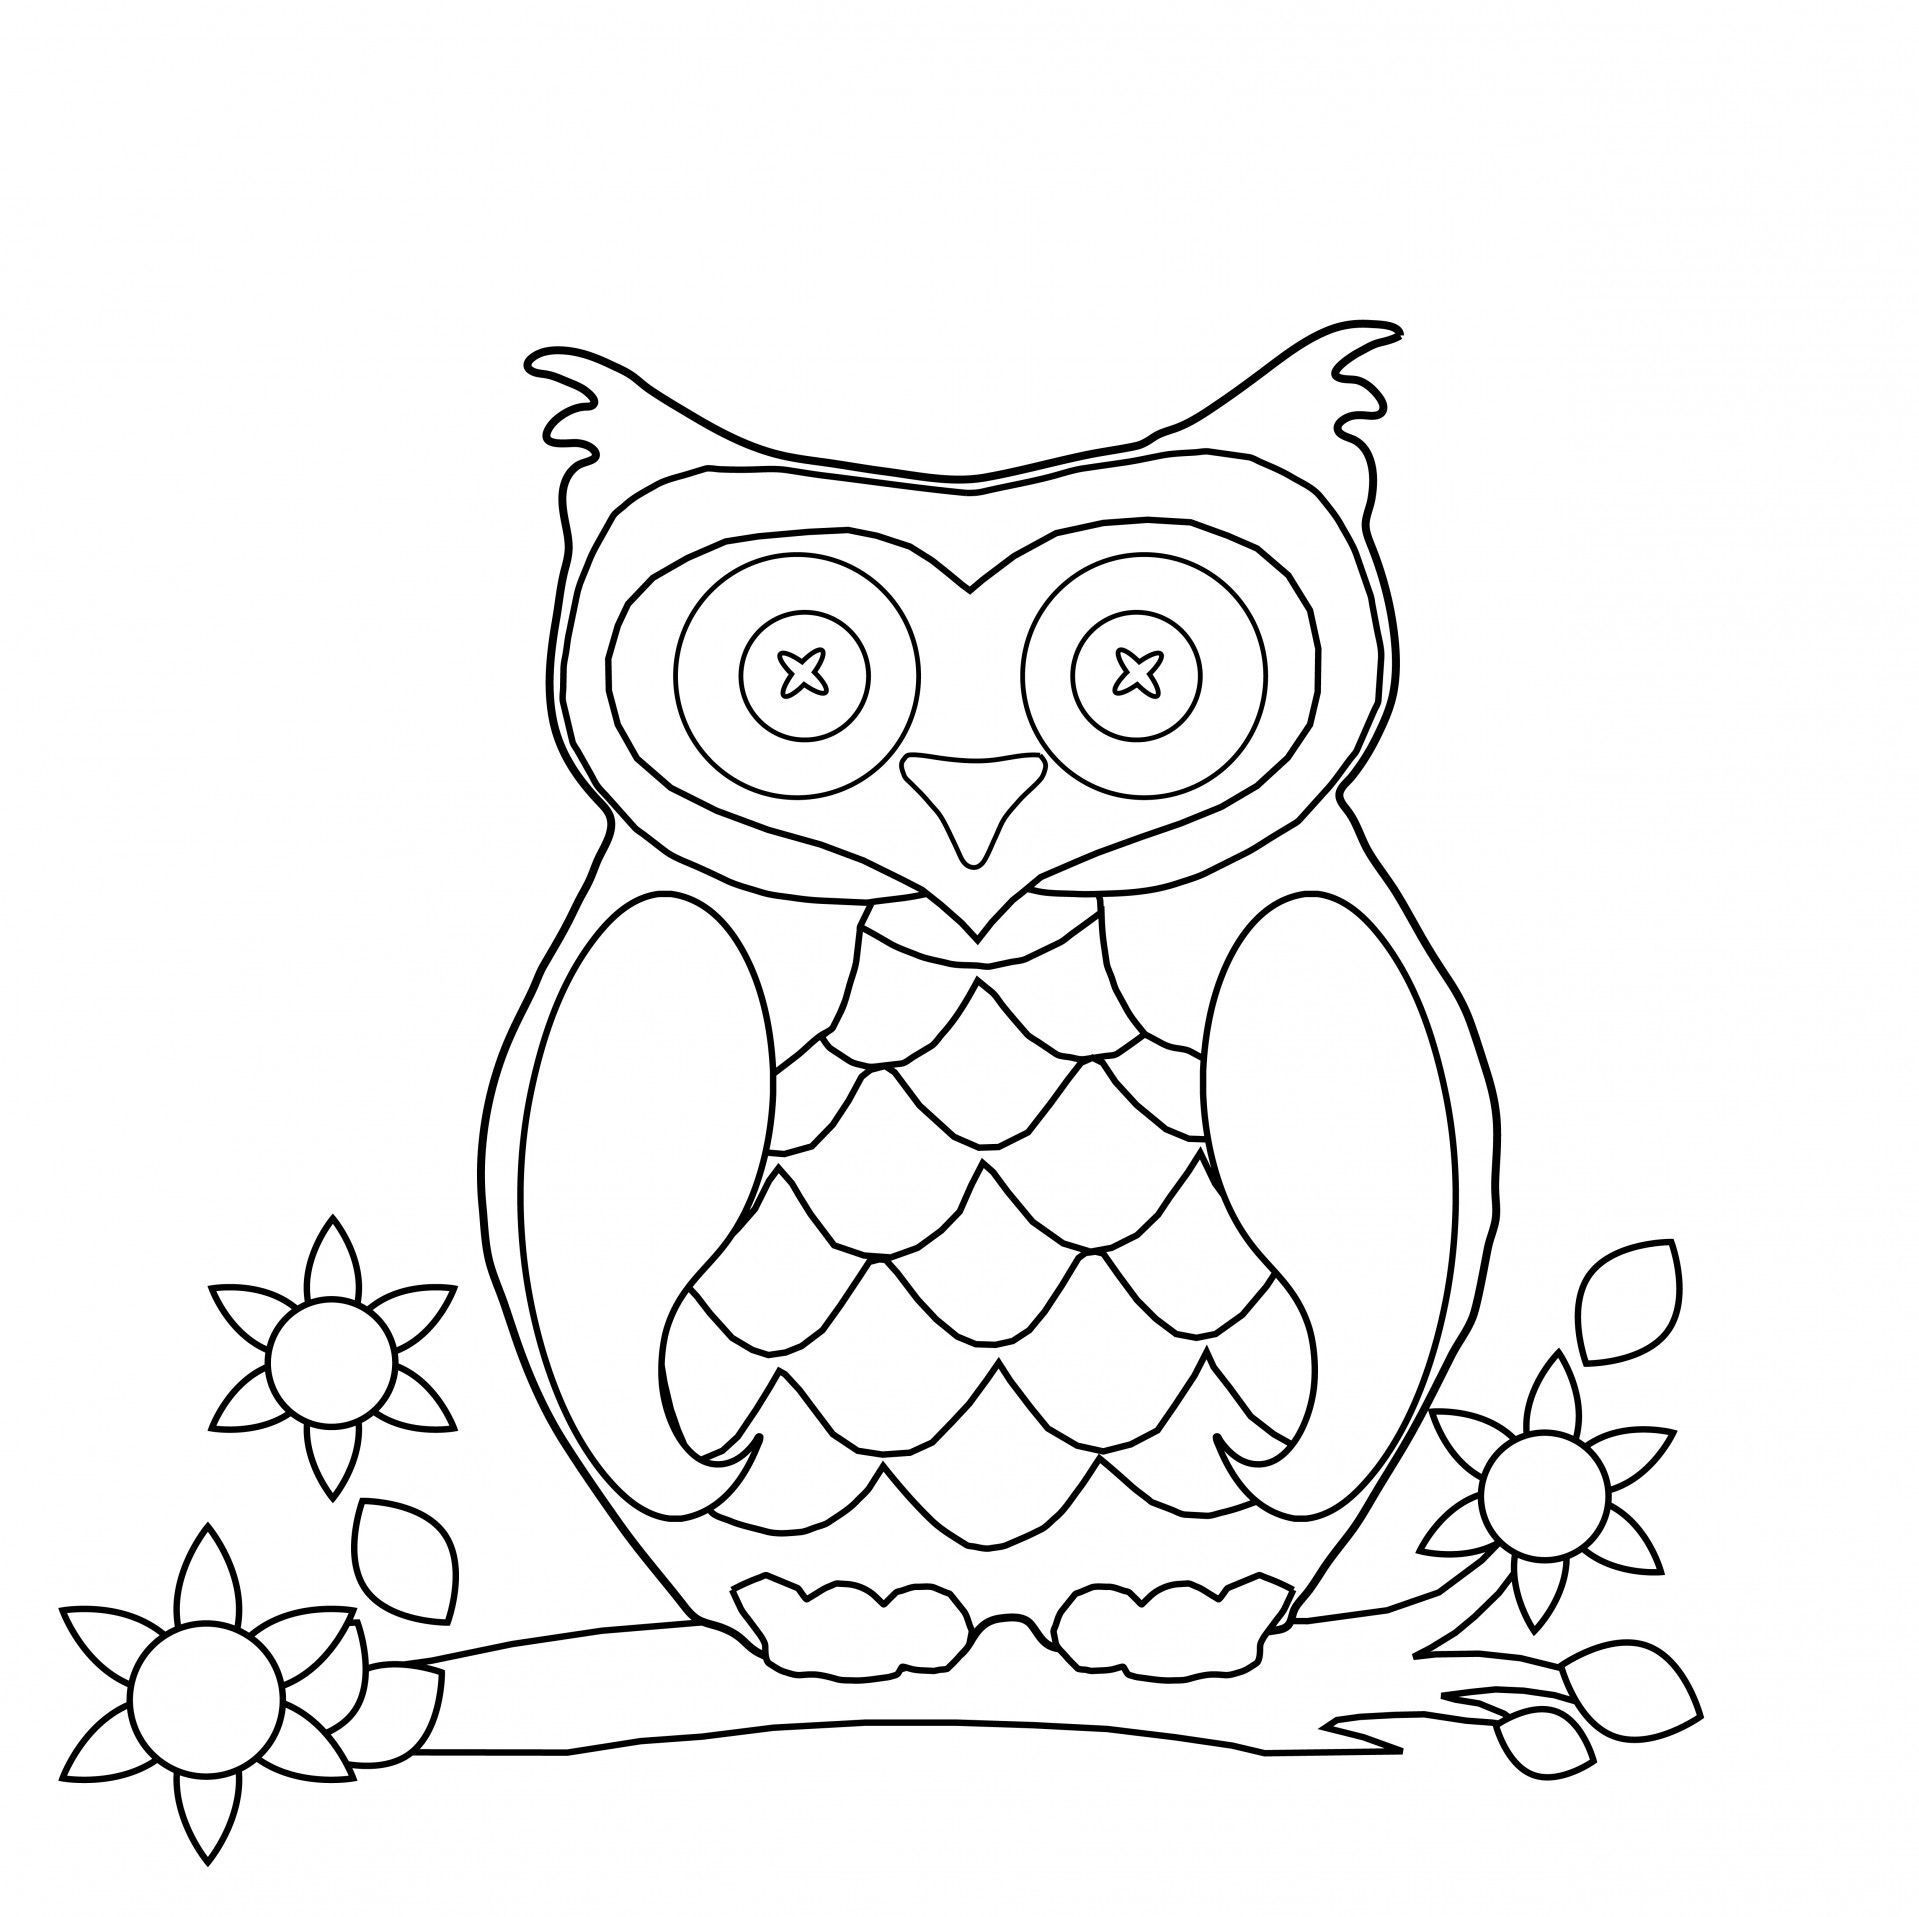 owl coloring pages print free printable cute owl coloring pages christian childcare activities pinterest free printable owl and free